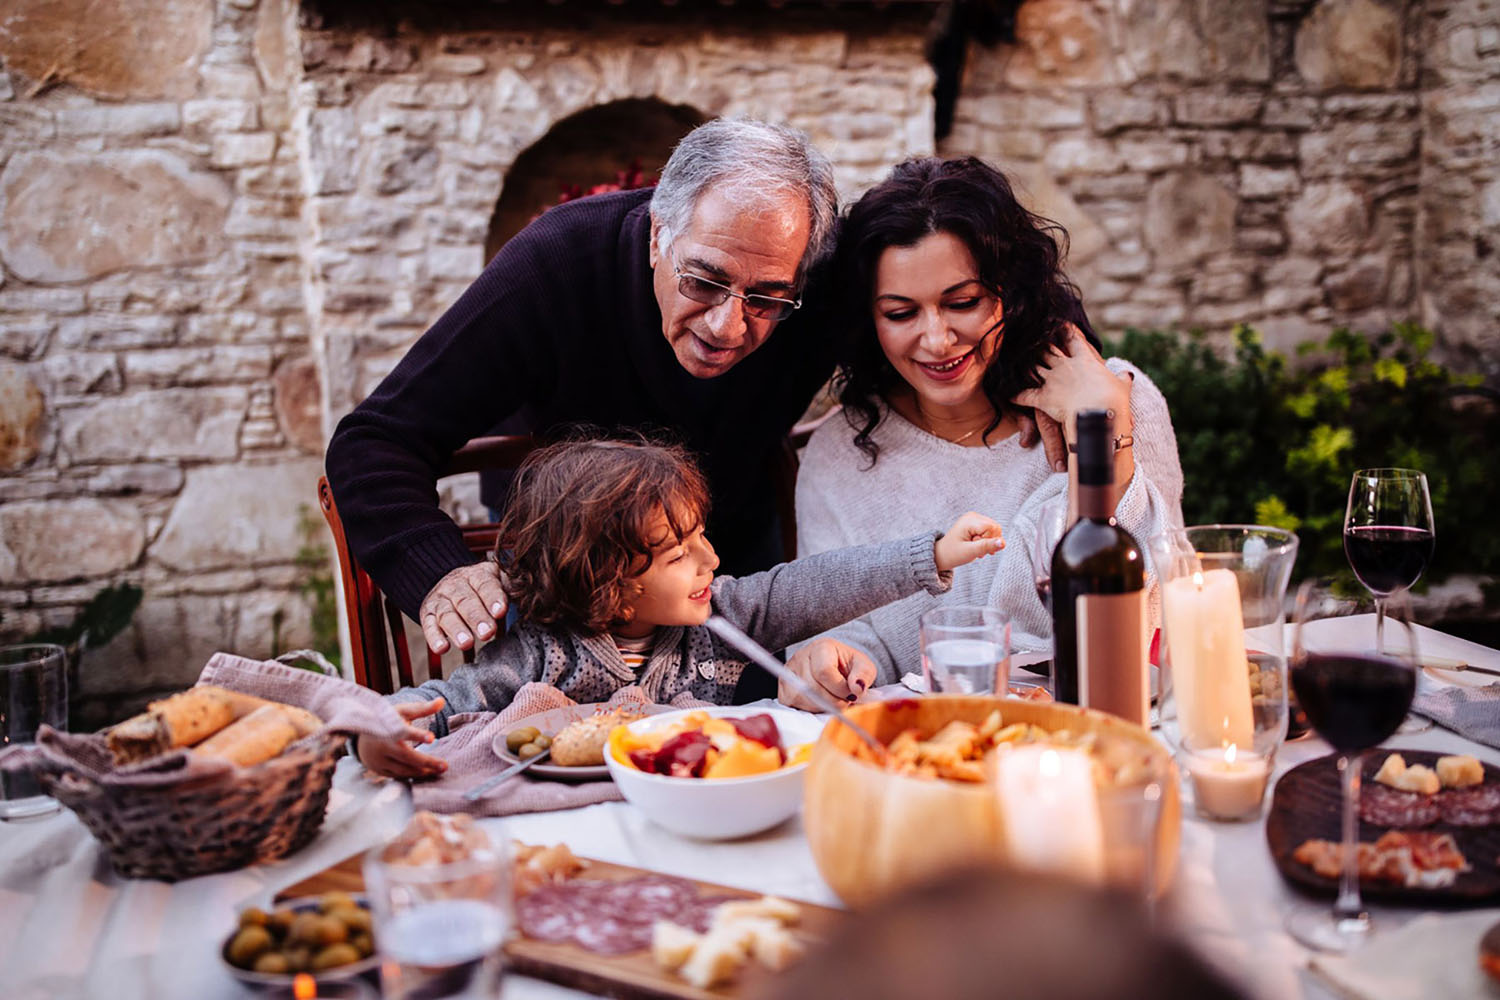 A family having Italian lunch at traditional rustic restaurant in Italian village